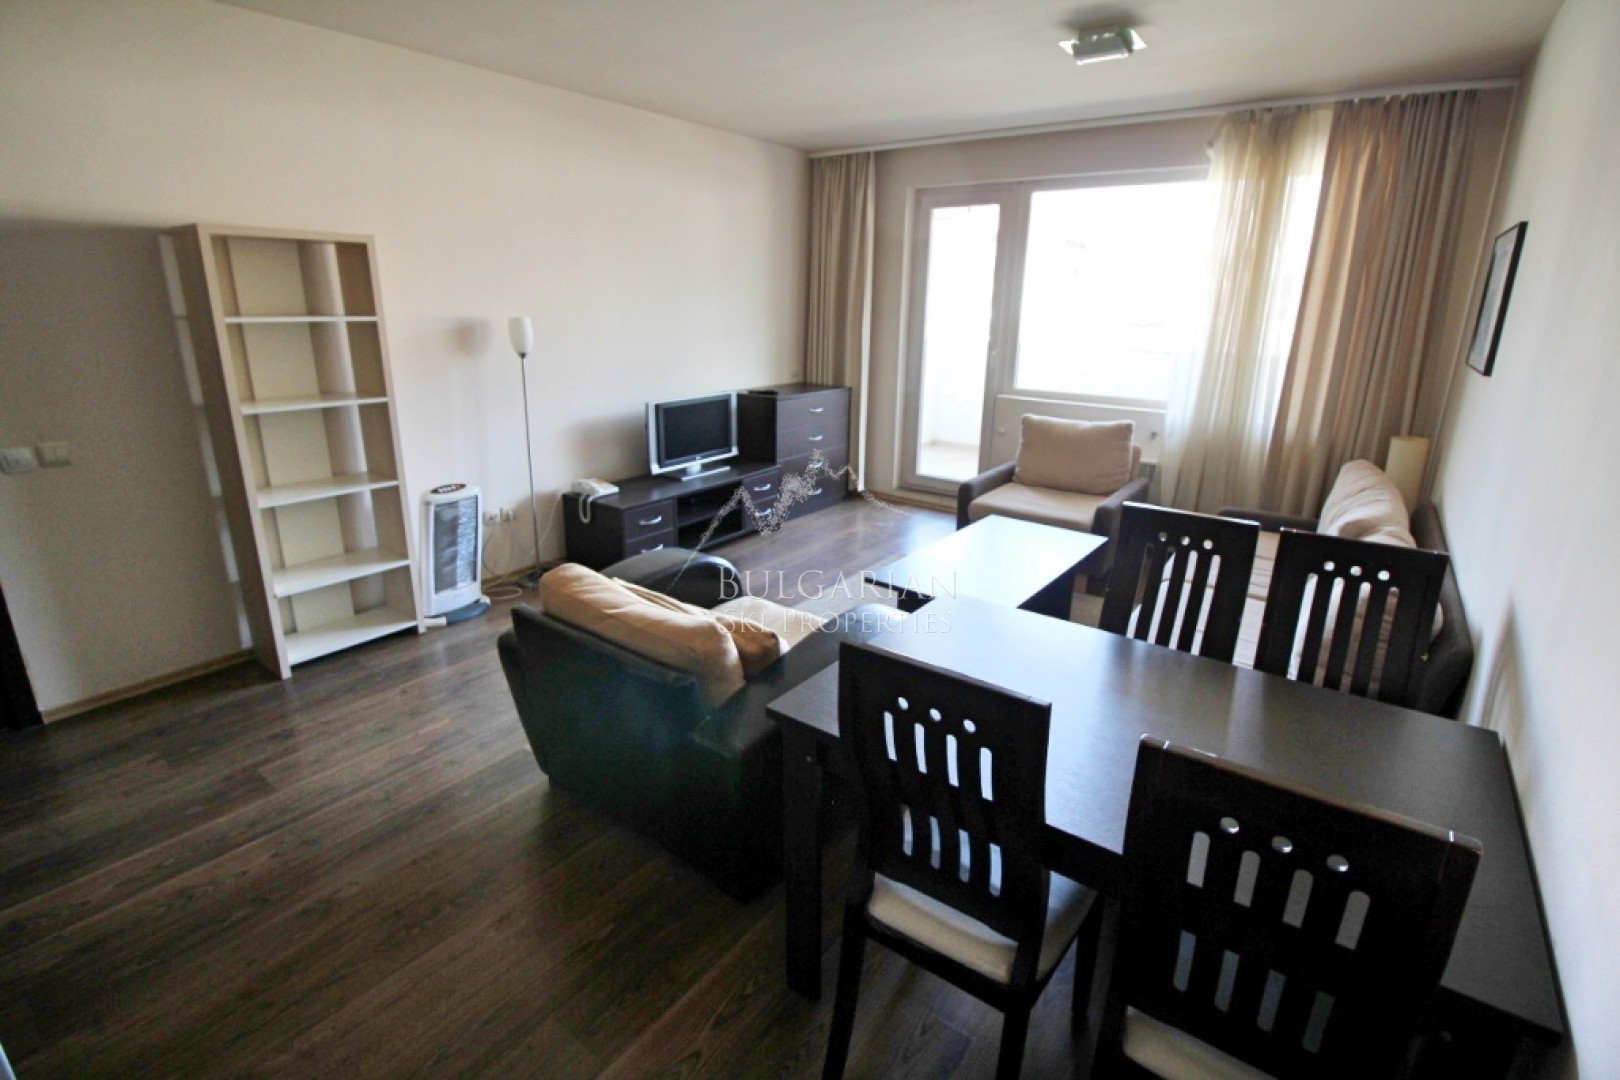 Bansko Royal Towers: furnished one-bedroom apartment for sale